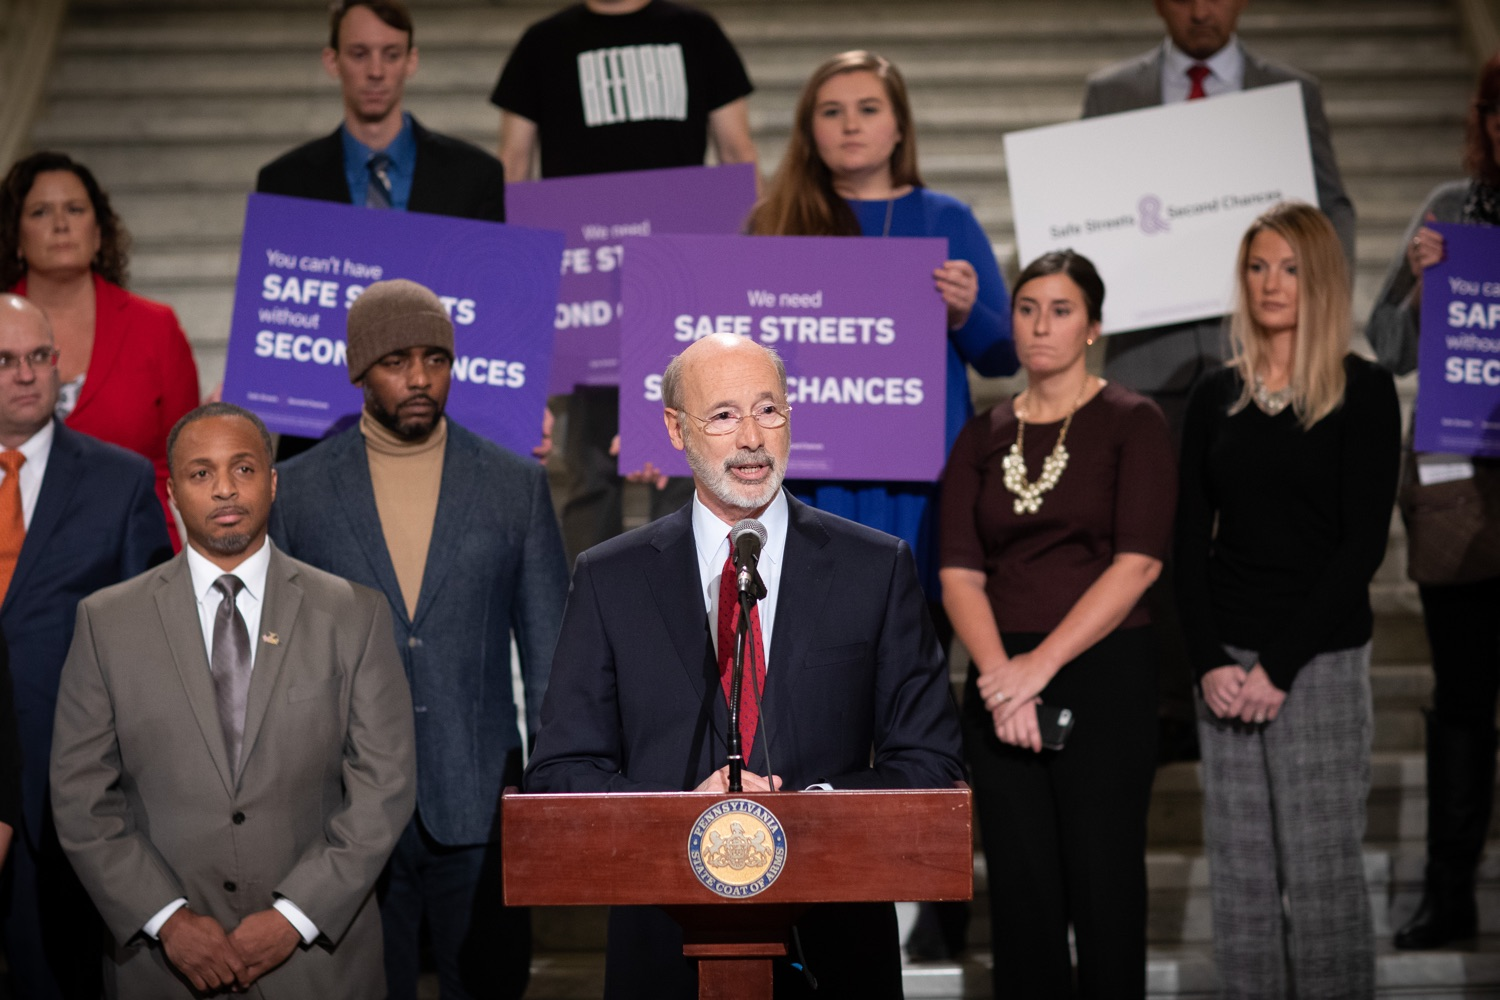 """<a href=""""https://filesource.wostreaming.net/commonwealthofpa/photo/17601_gov_right_on_crime_dz_007.jpg"""" target=""""_blank"""">⇣Download Photo<br></a>Governor Tom Wolf speaking at the event. Governor Tom Wolf was joined by Deputy Secretary of Corrections Christian Stephens and national criminal justice reform advocates today in the Capitol Rotunda to push for commonsense probation reforms that address probation sentences and probation lengths.  Harrisburg, PA  November 18, 2019"""